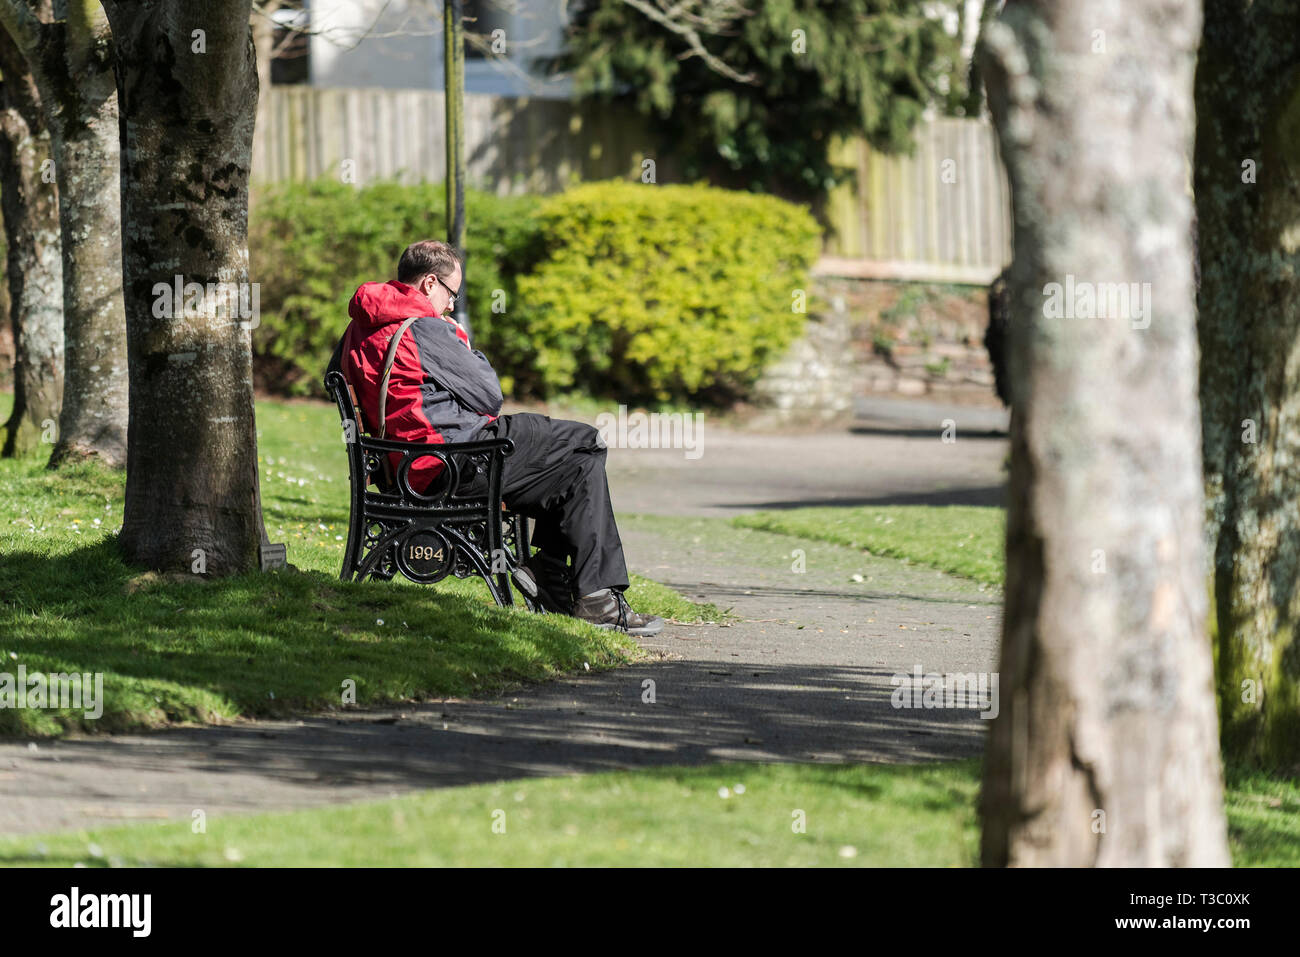 A man sitting in silent contemplation on a park bench in Trenance Gardens in Newquay in Cornwall. - Stock Image